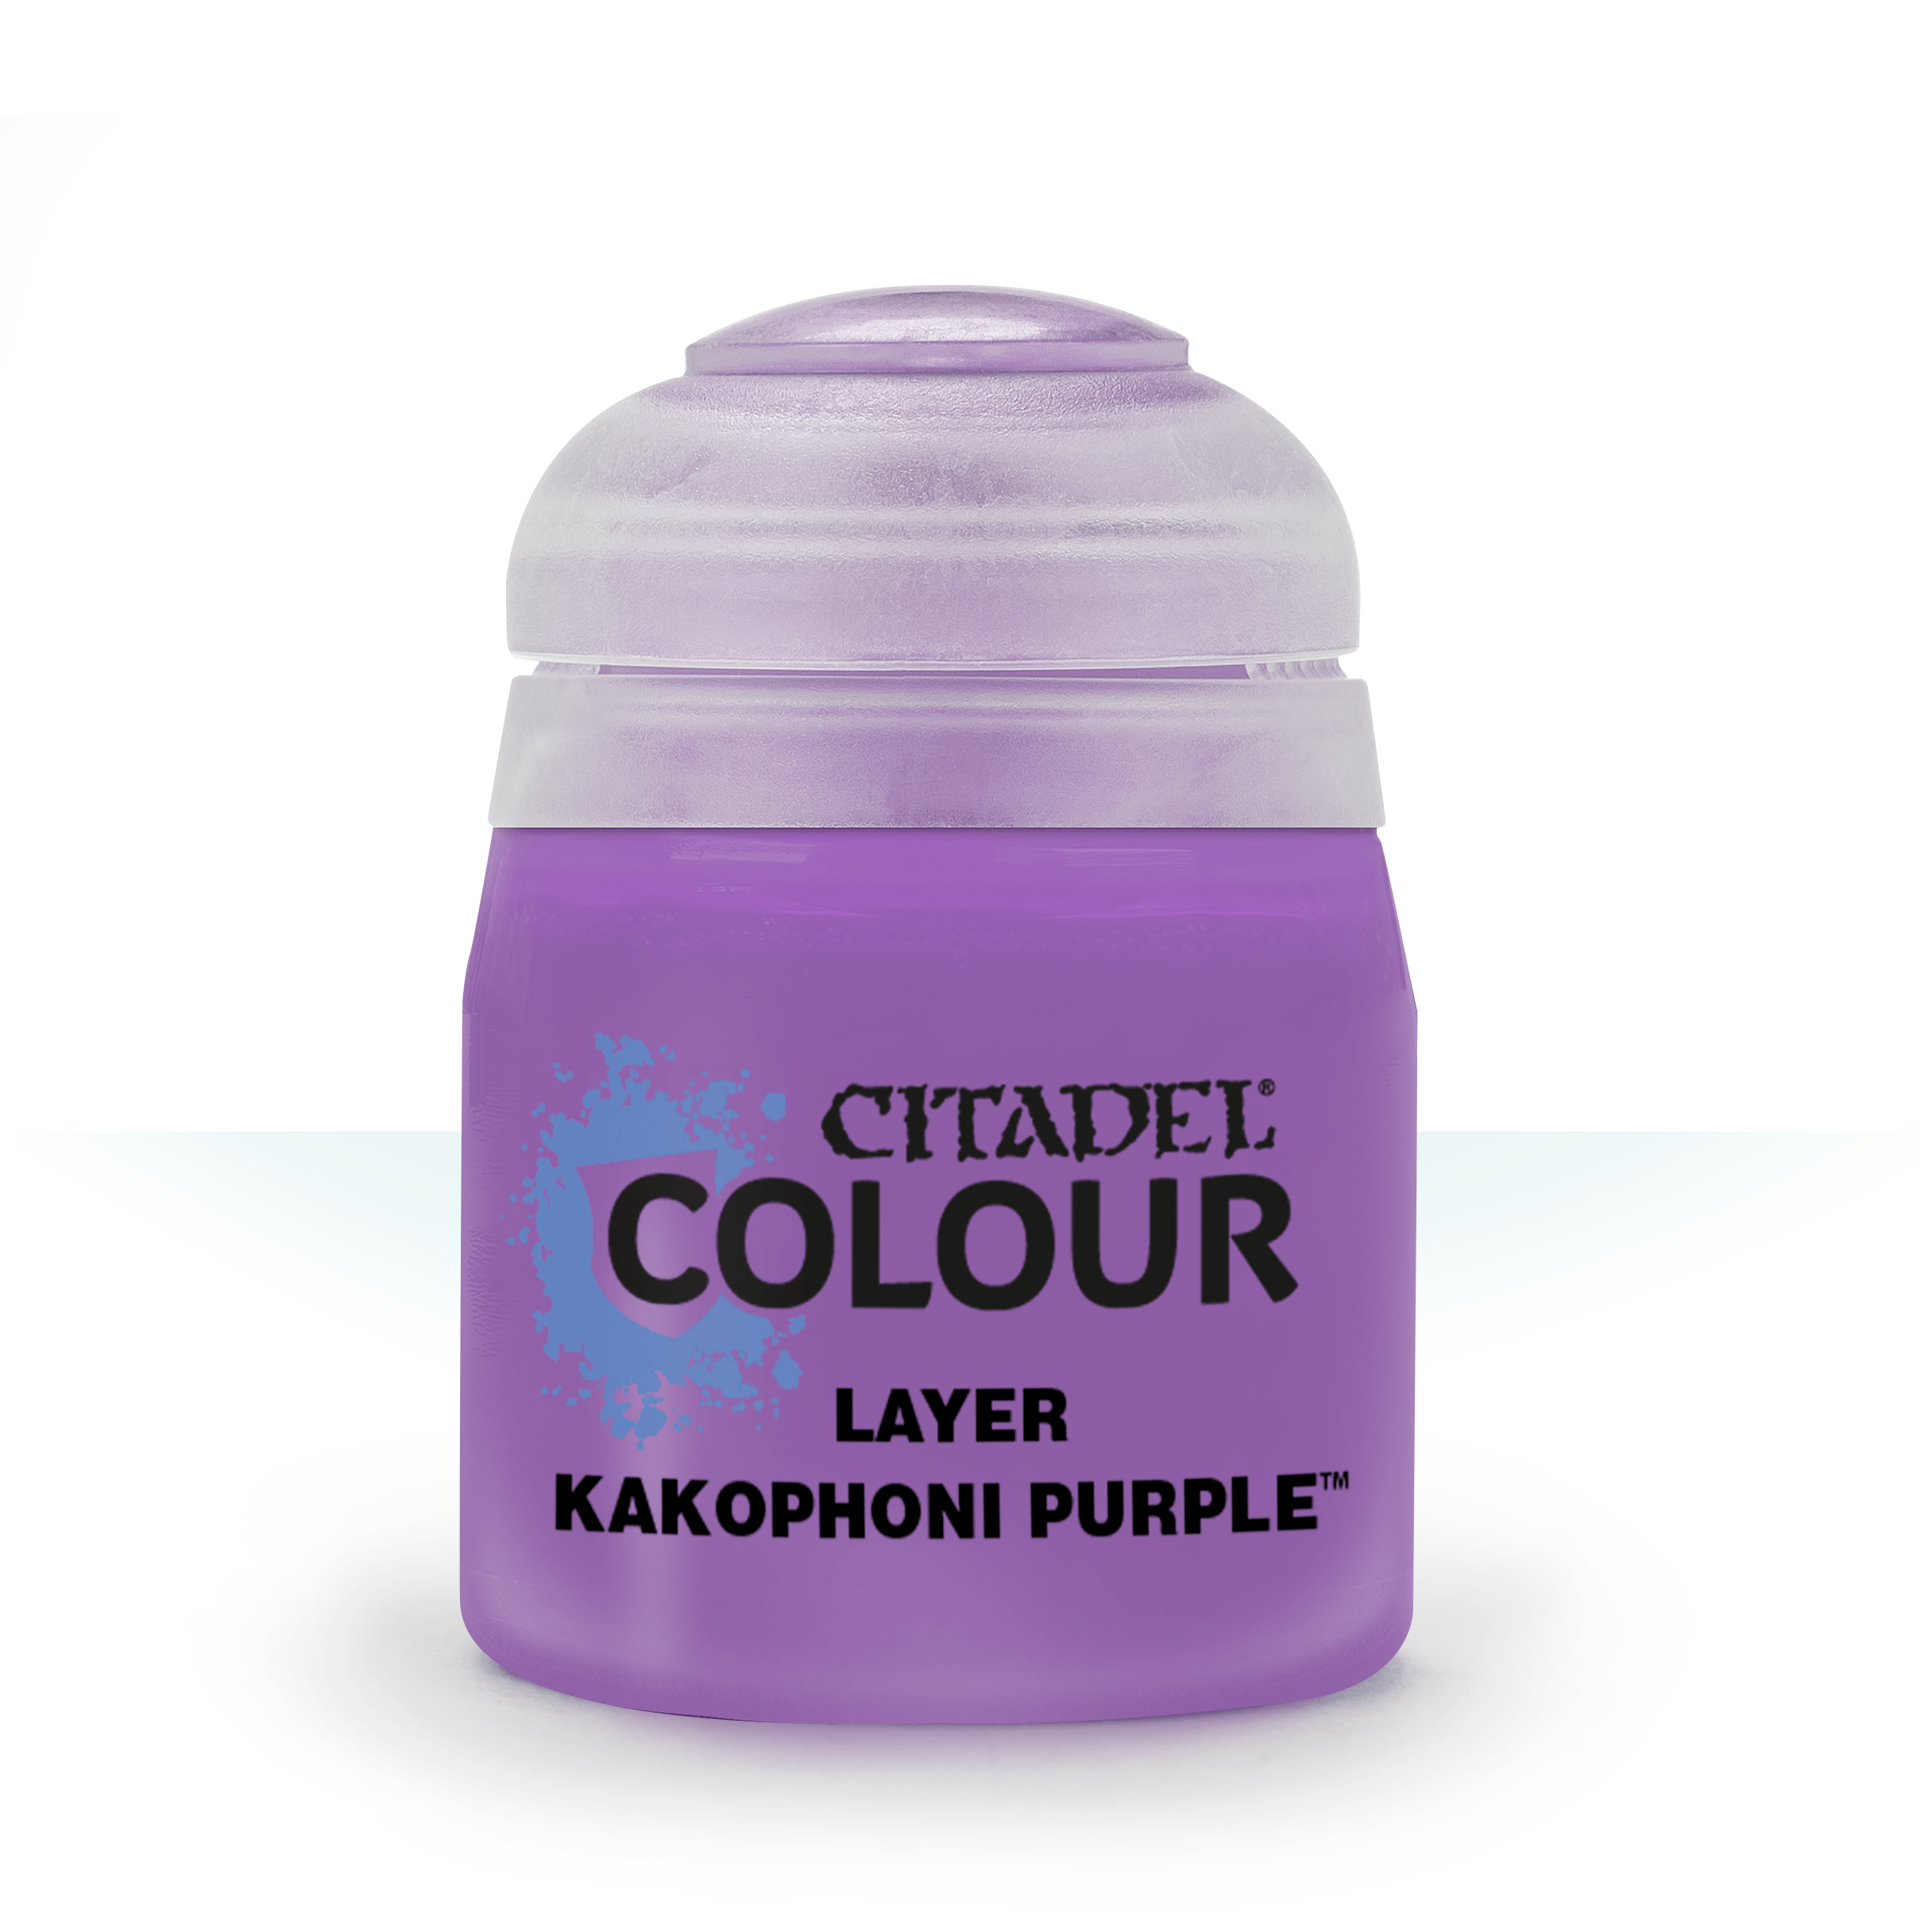 Citadel Layer Paints: Kakophoni Purple